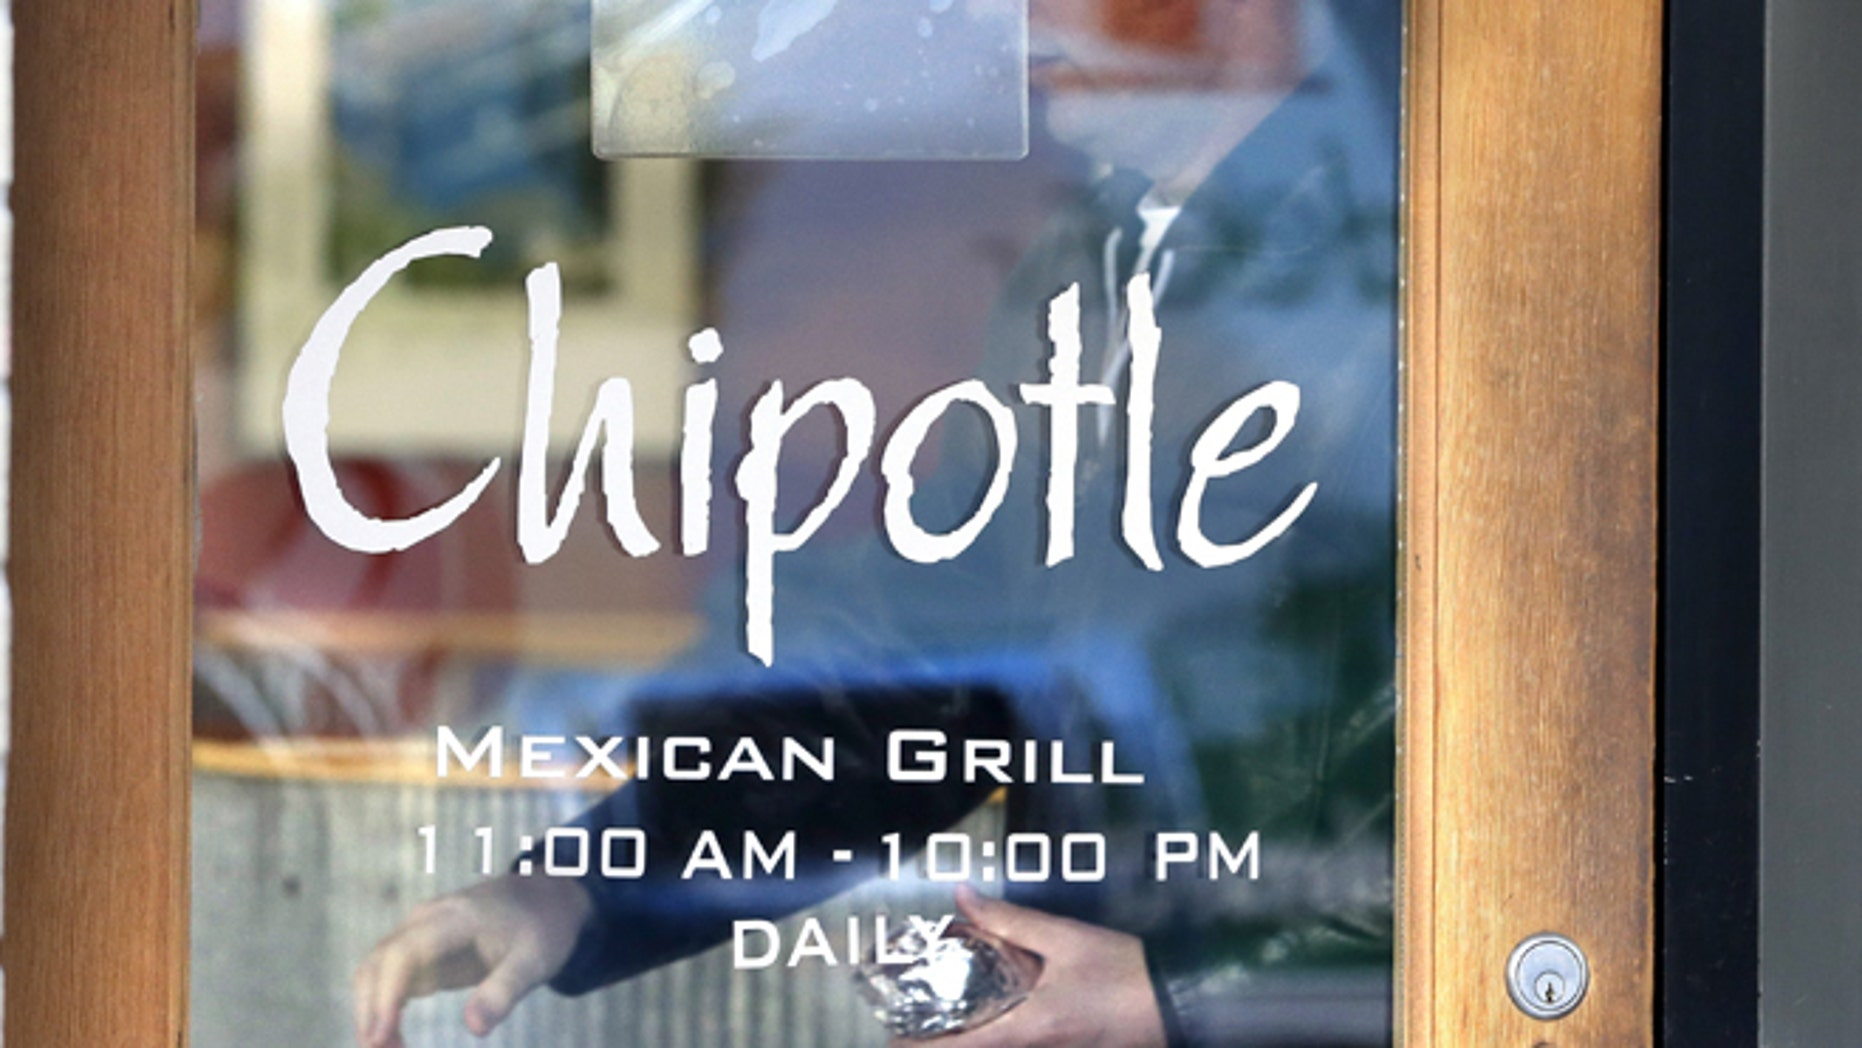 Chipotle offers manager job back in St. Paul dine-and-dash